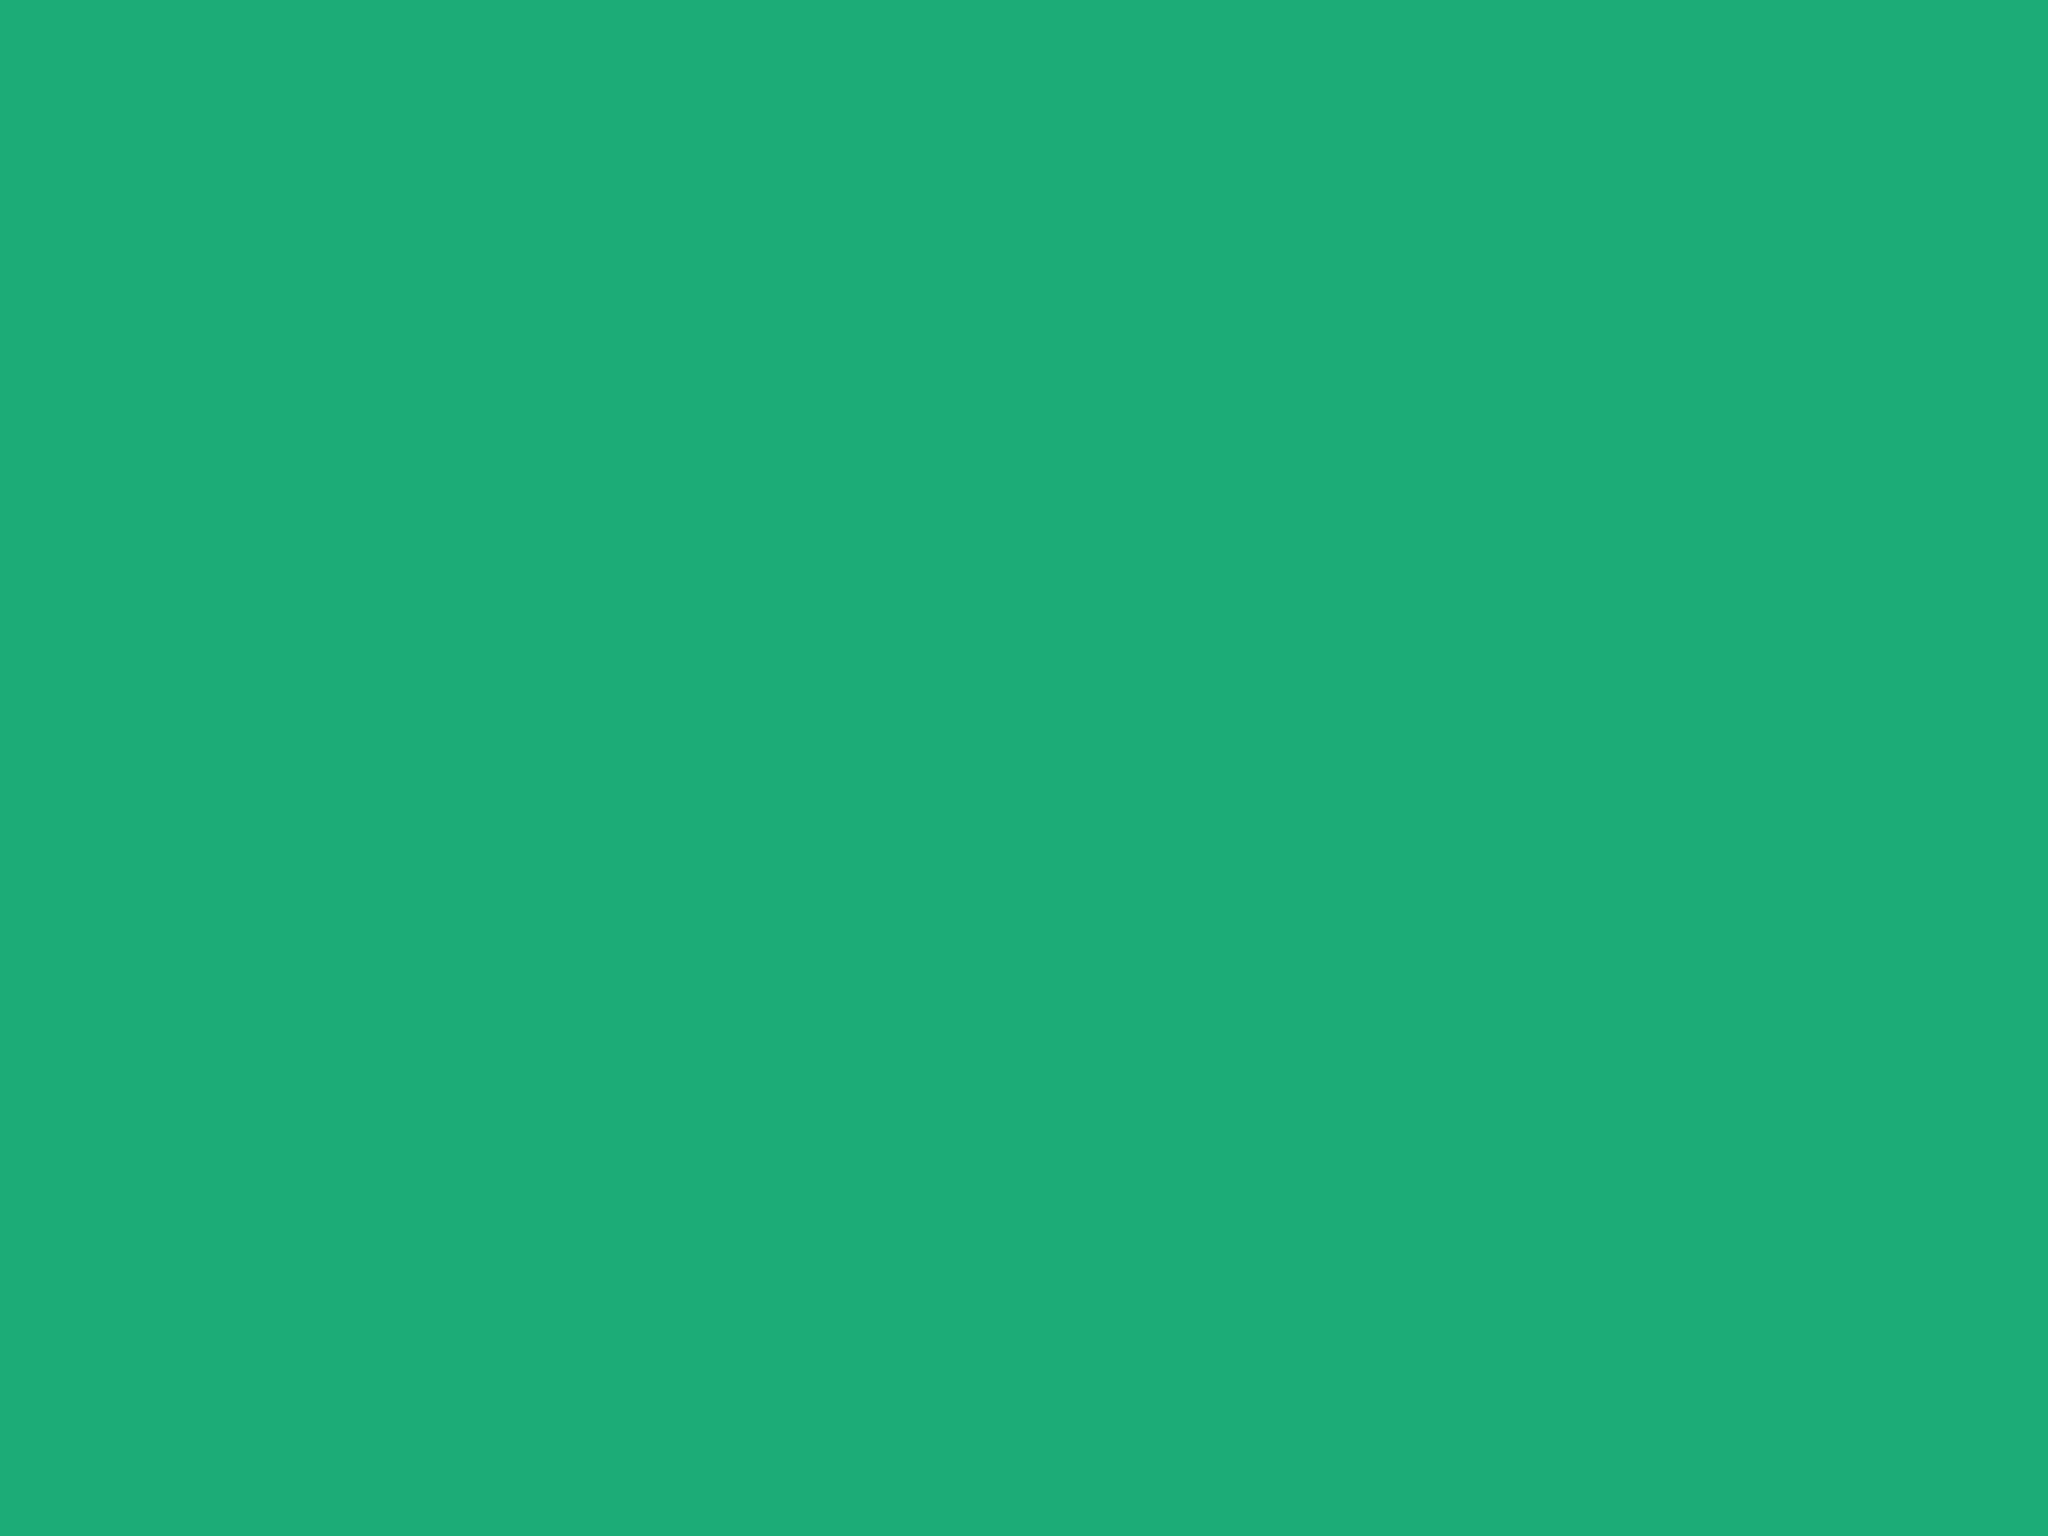 2048x1536 Green Crayola Solid Color Background